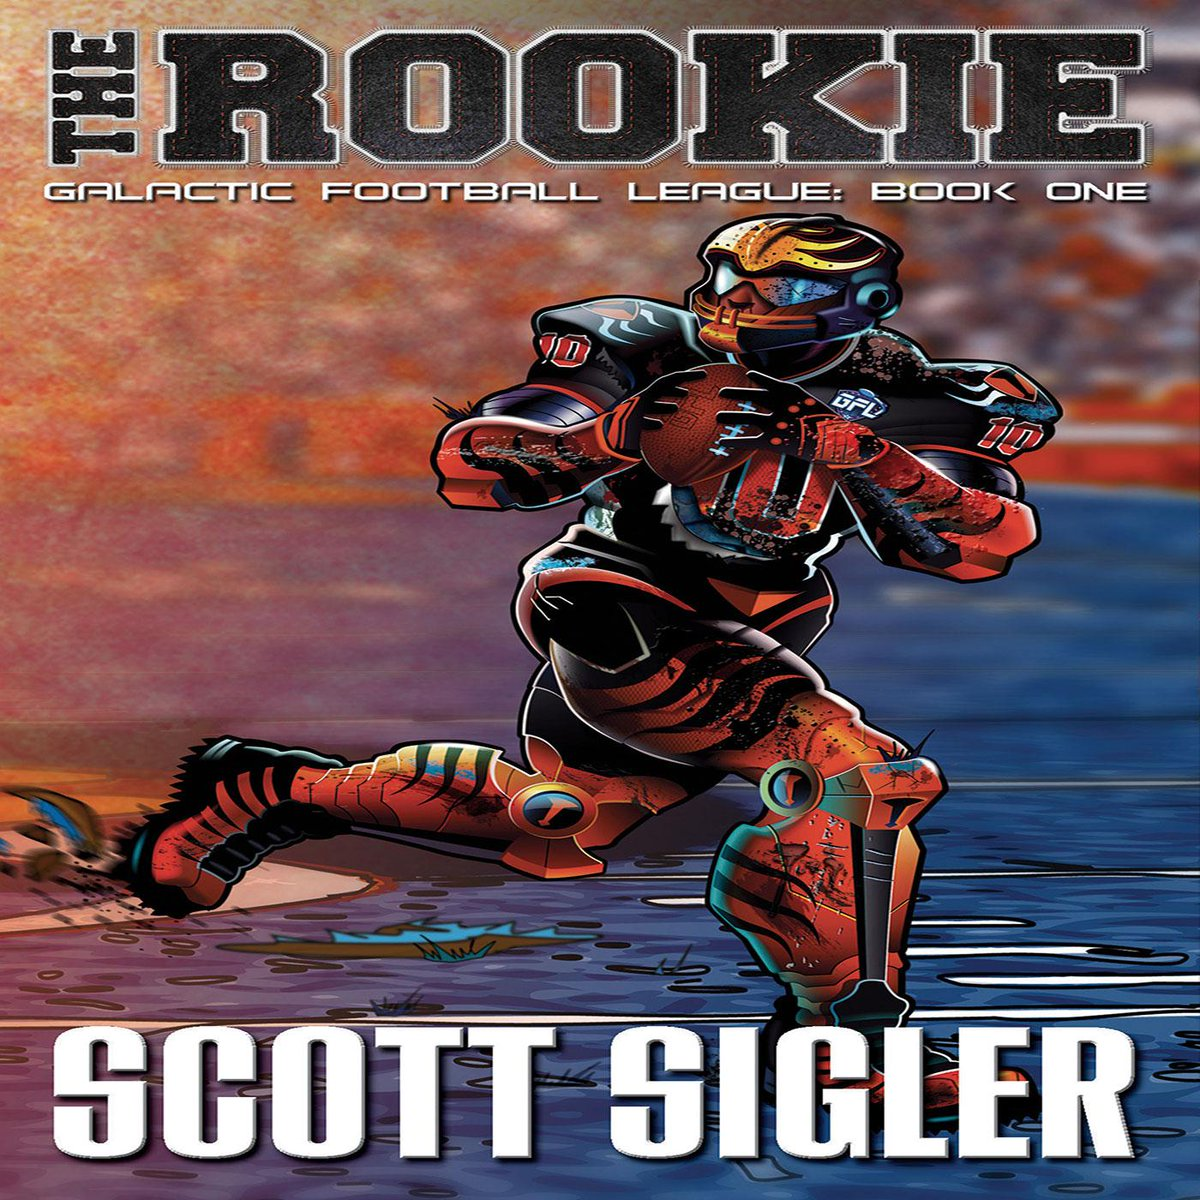 Set your timers!   1/1/15, @scottsigler's The Rookie will be back on http://t.co/RwPYMgCLhe!  GO KRAKENS! http://t.co/0gIsHbD2HU